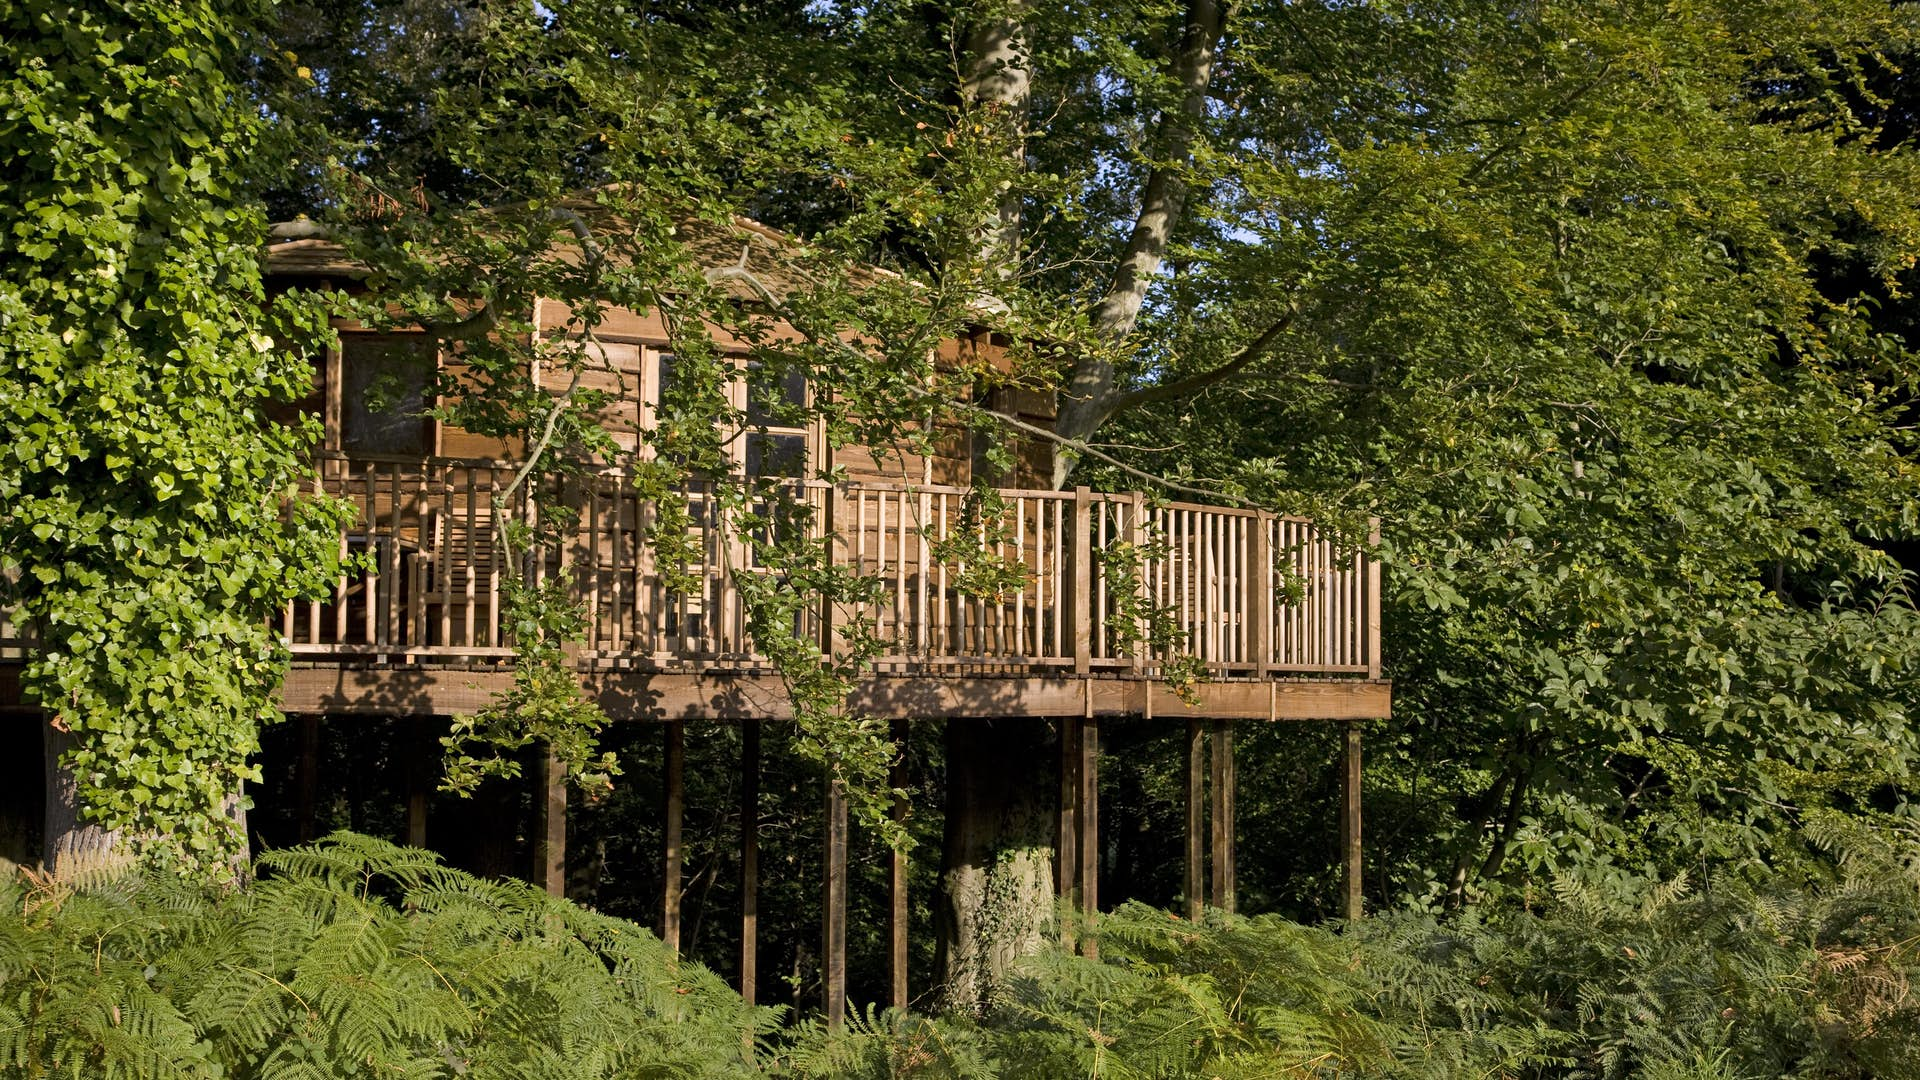 The Treehouse Business New Place Hotel Hampshire